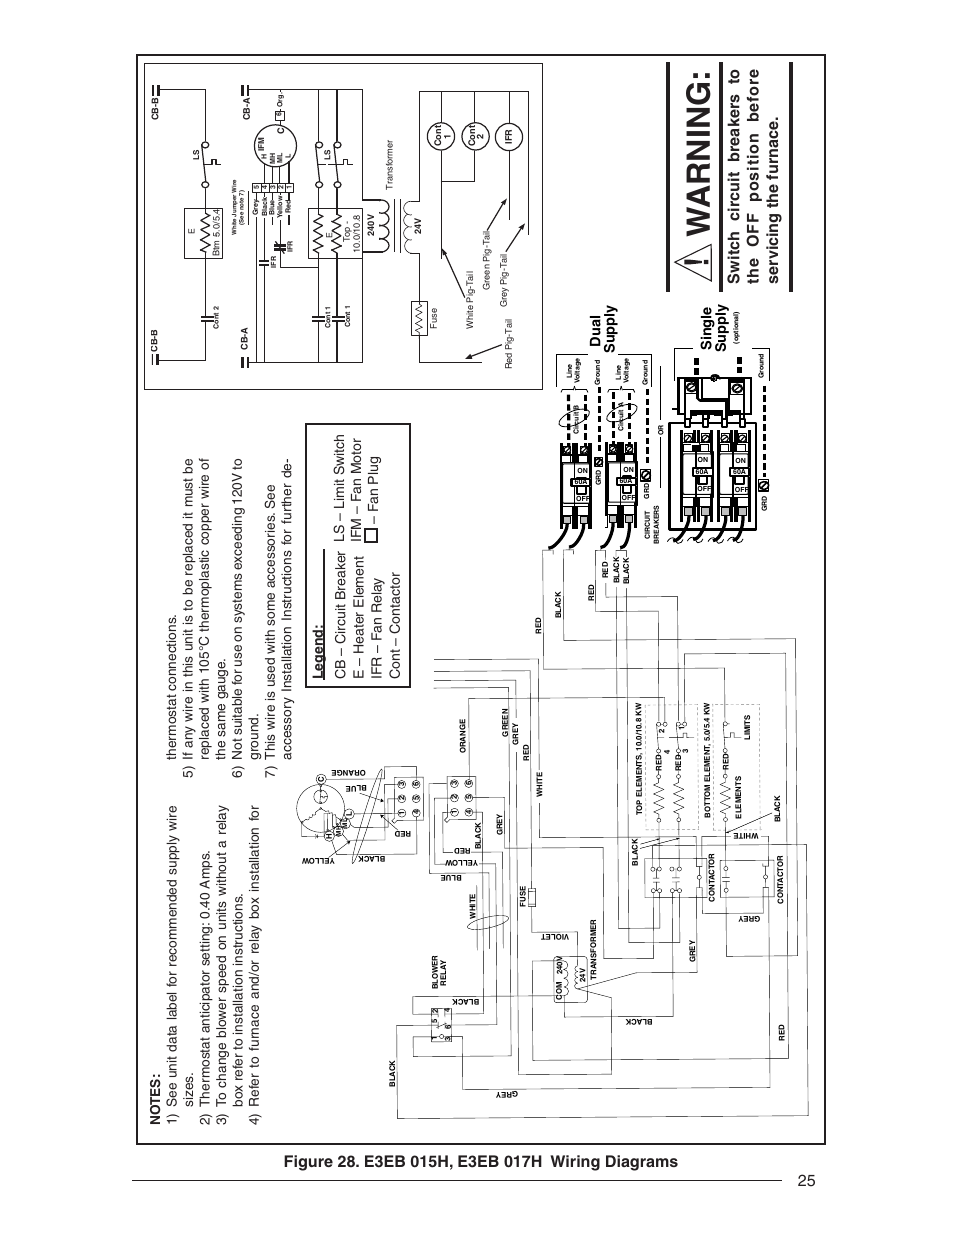 standard wiring for electric light and power as adopted by the fire underwriters of th united states in accordance with the national electrical code and inside wiring and construction for